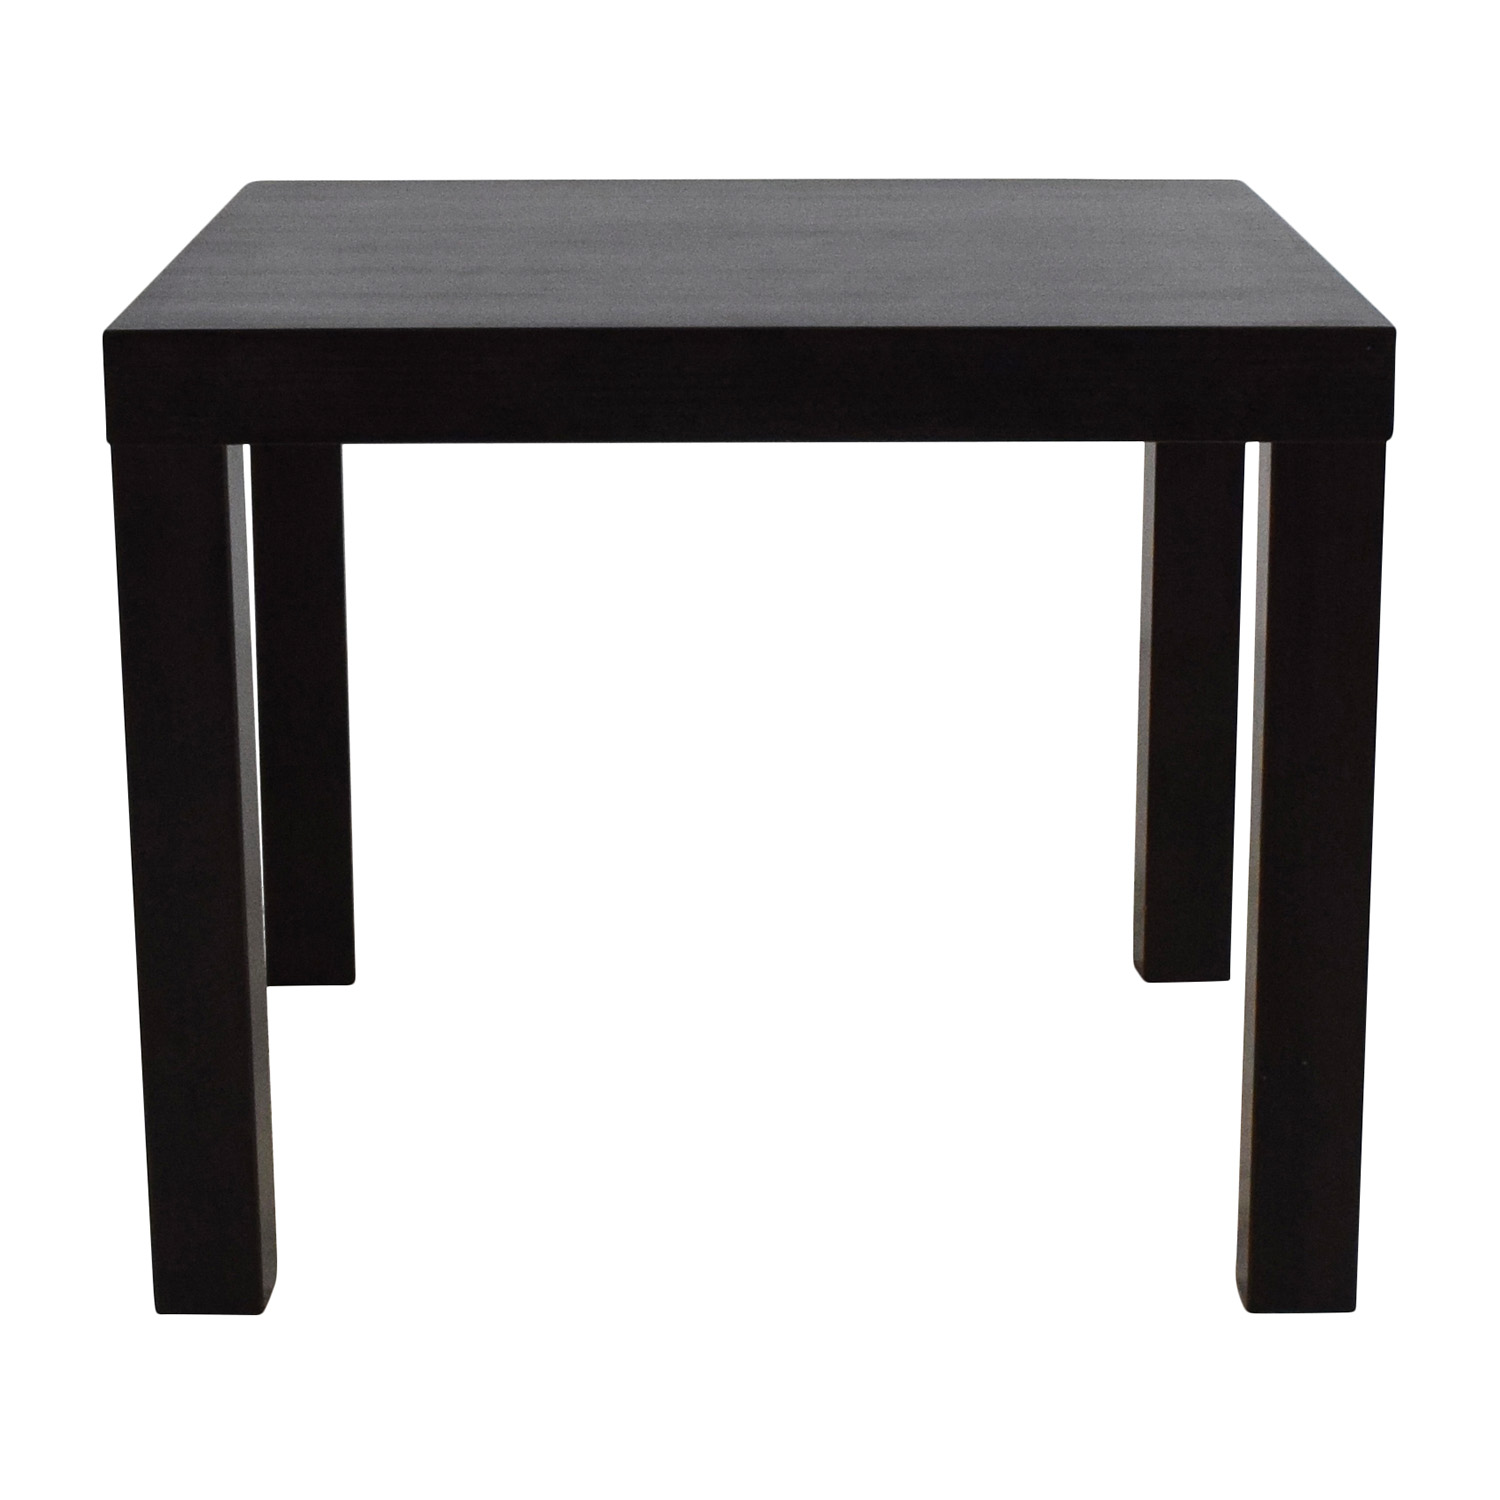 shop Black Coffee Table online